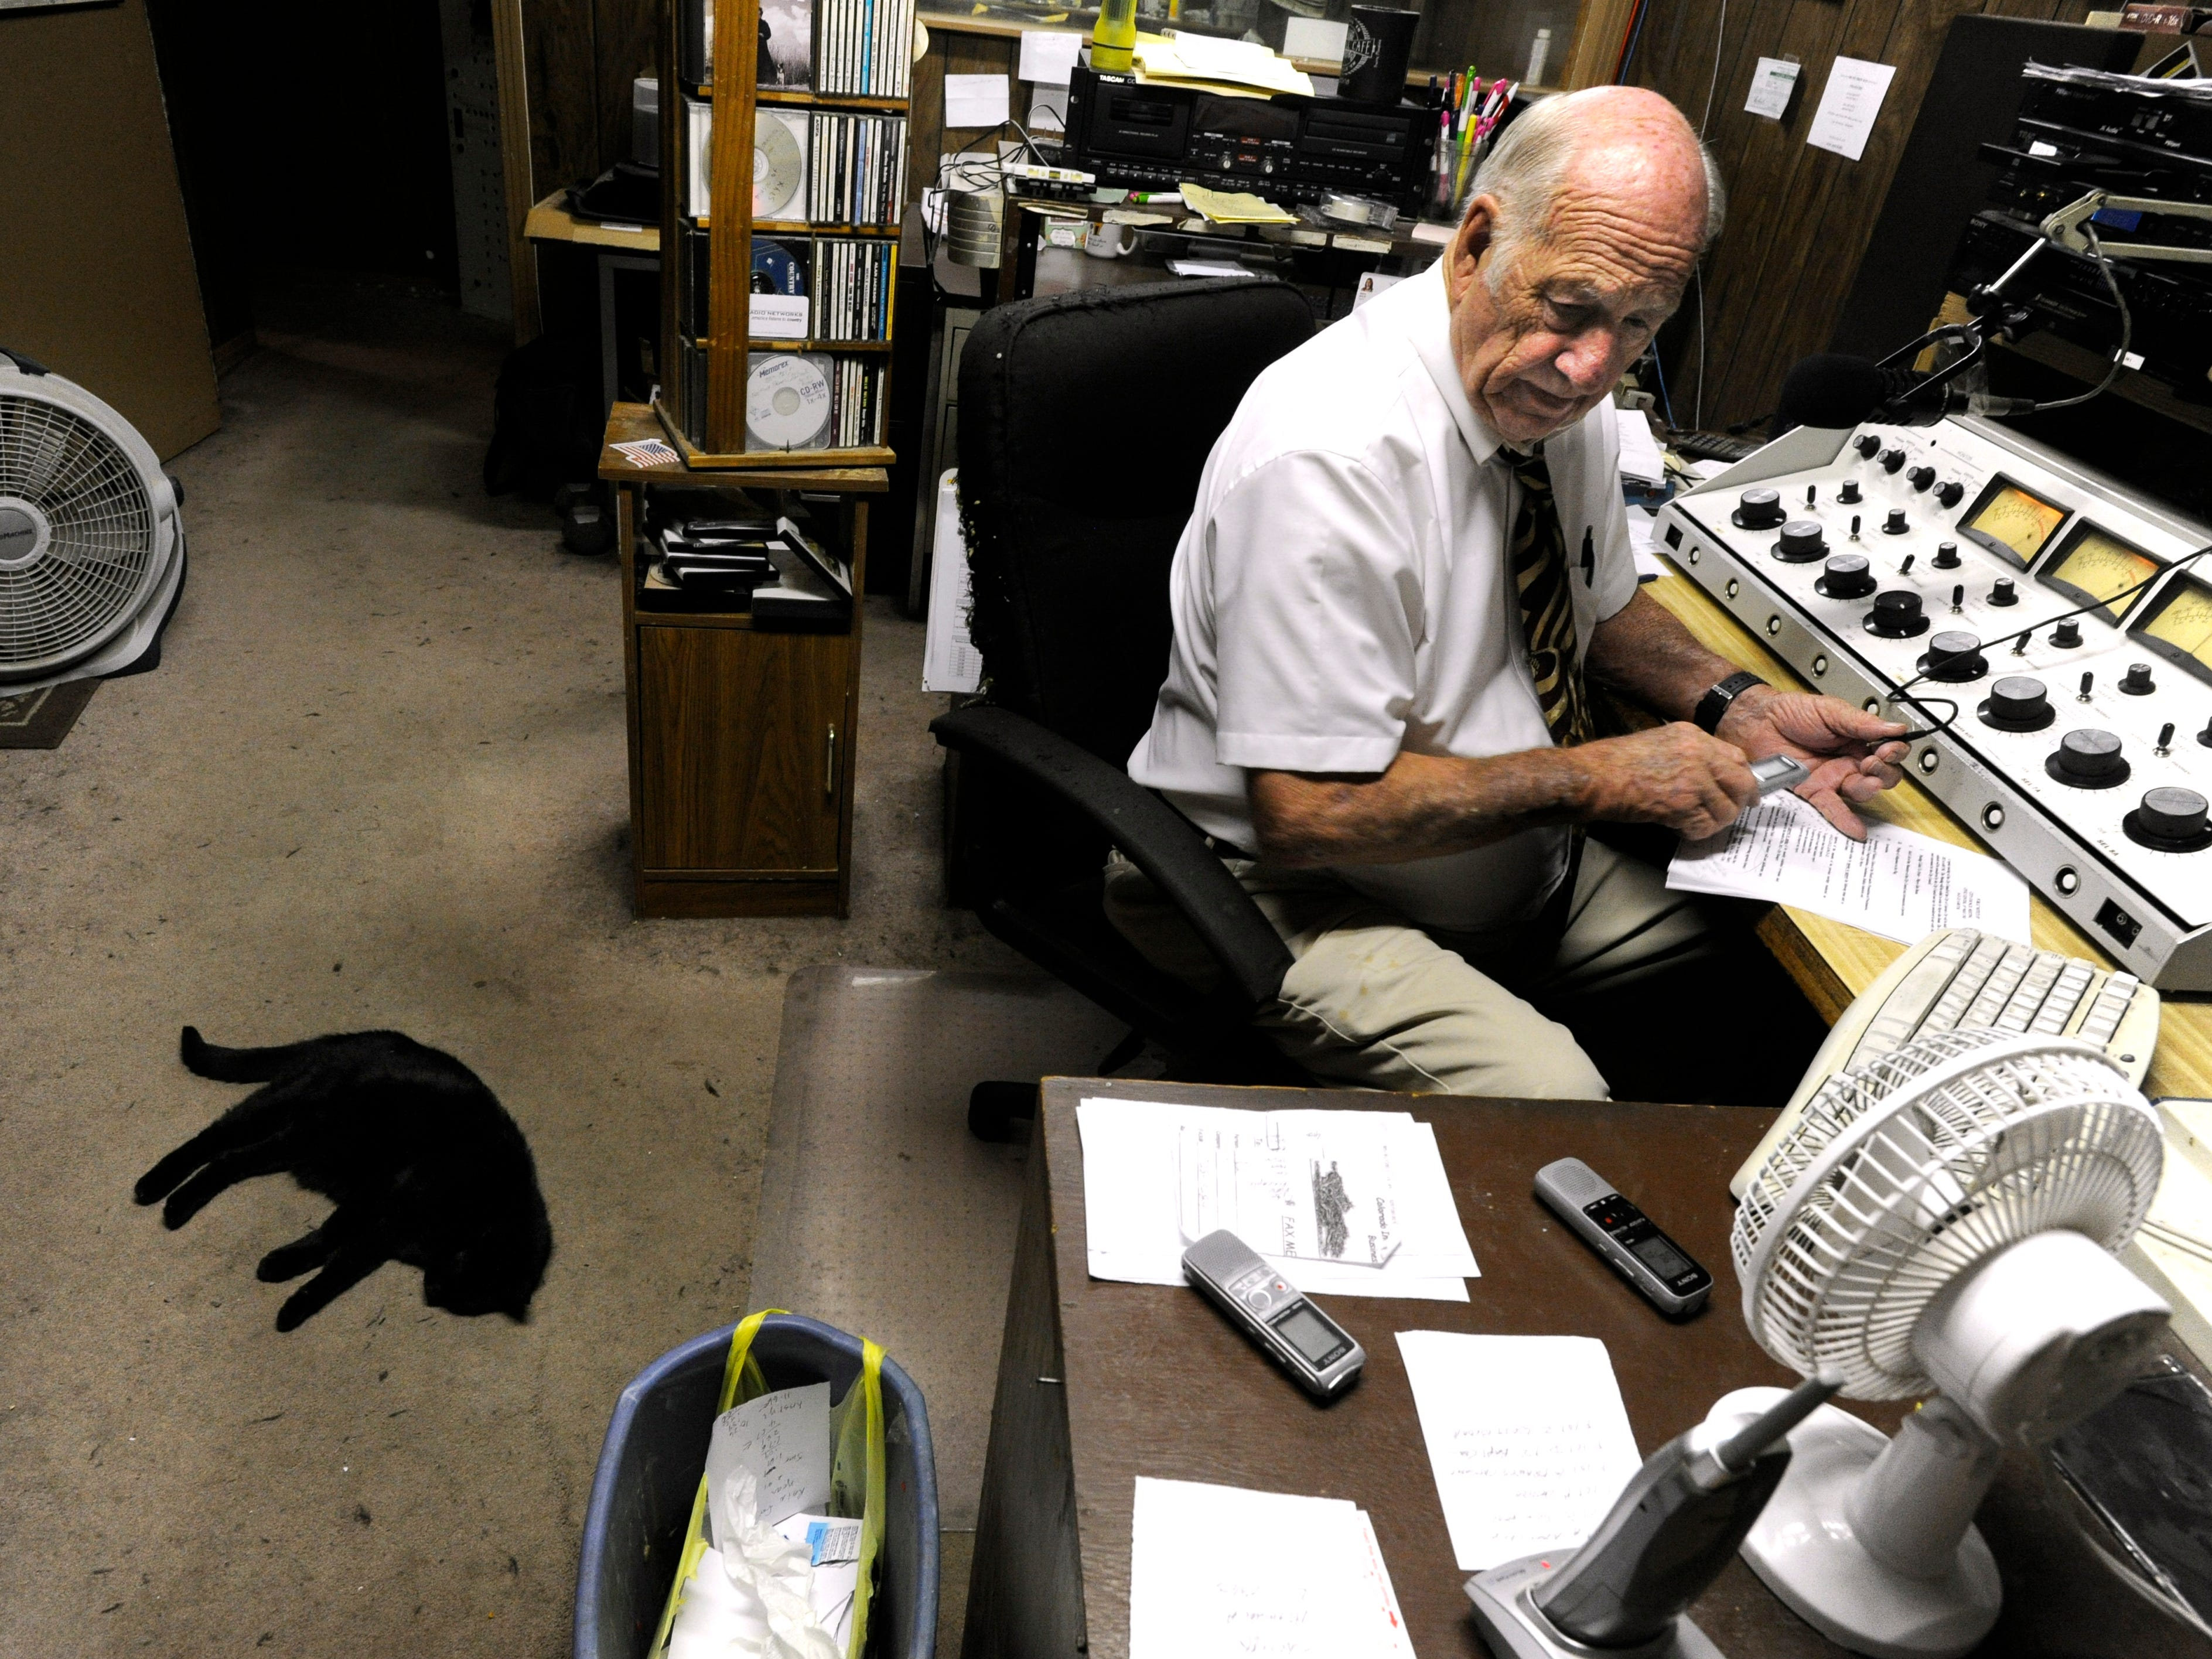 Jim Baum searches through his audio recorders for the evening's Colorado City Council meeting Tuesday June 11, 2013. Baum is the mayor and owner of KVMC/KAUM radio. After each meeting, Baum returns to the station to edit together a report for the next morning's newscast.